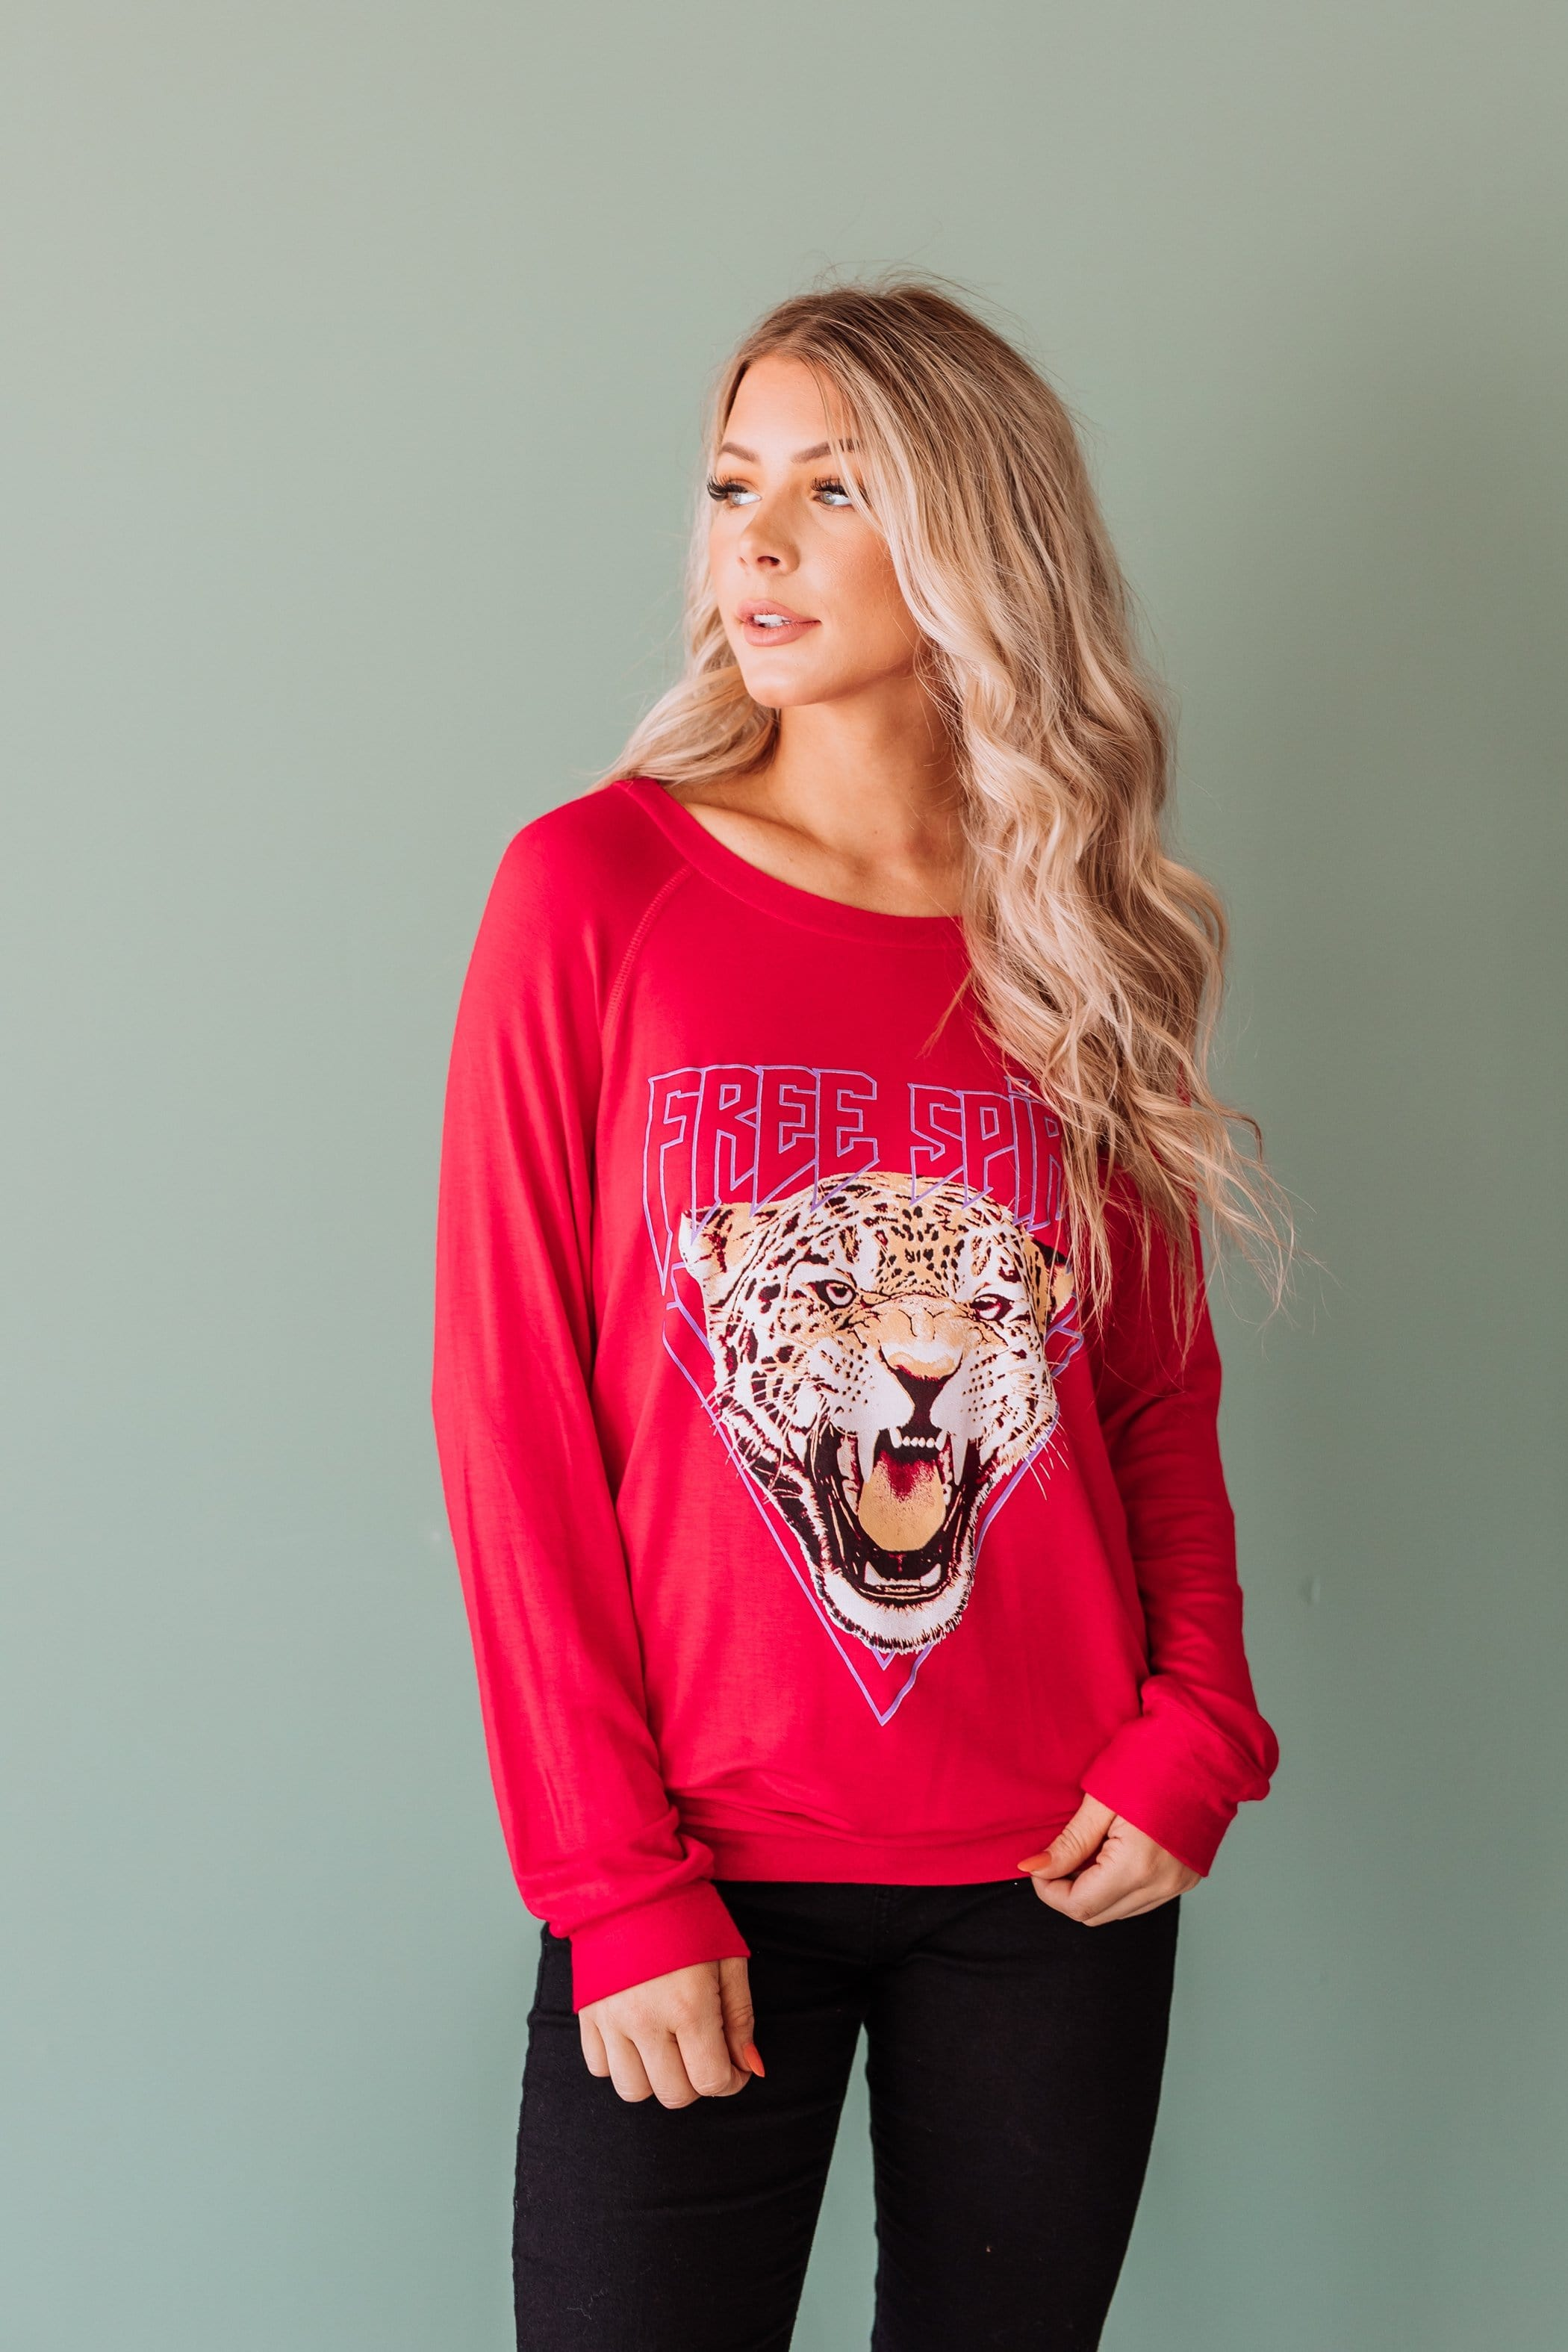 The Free Spirit Graphic Top in Black and Red